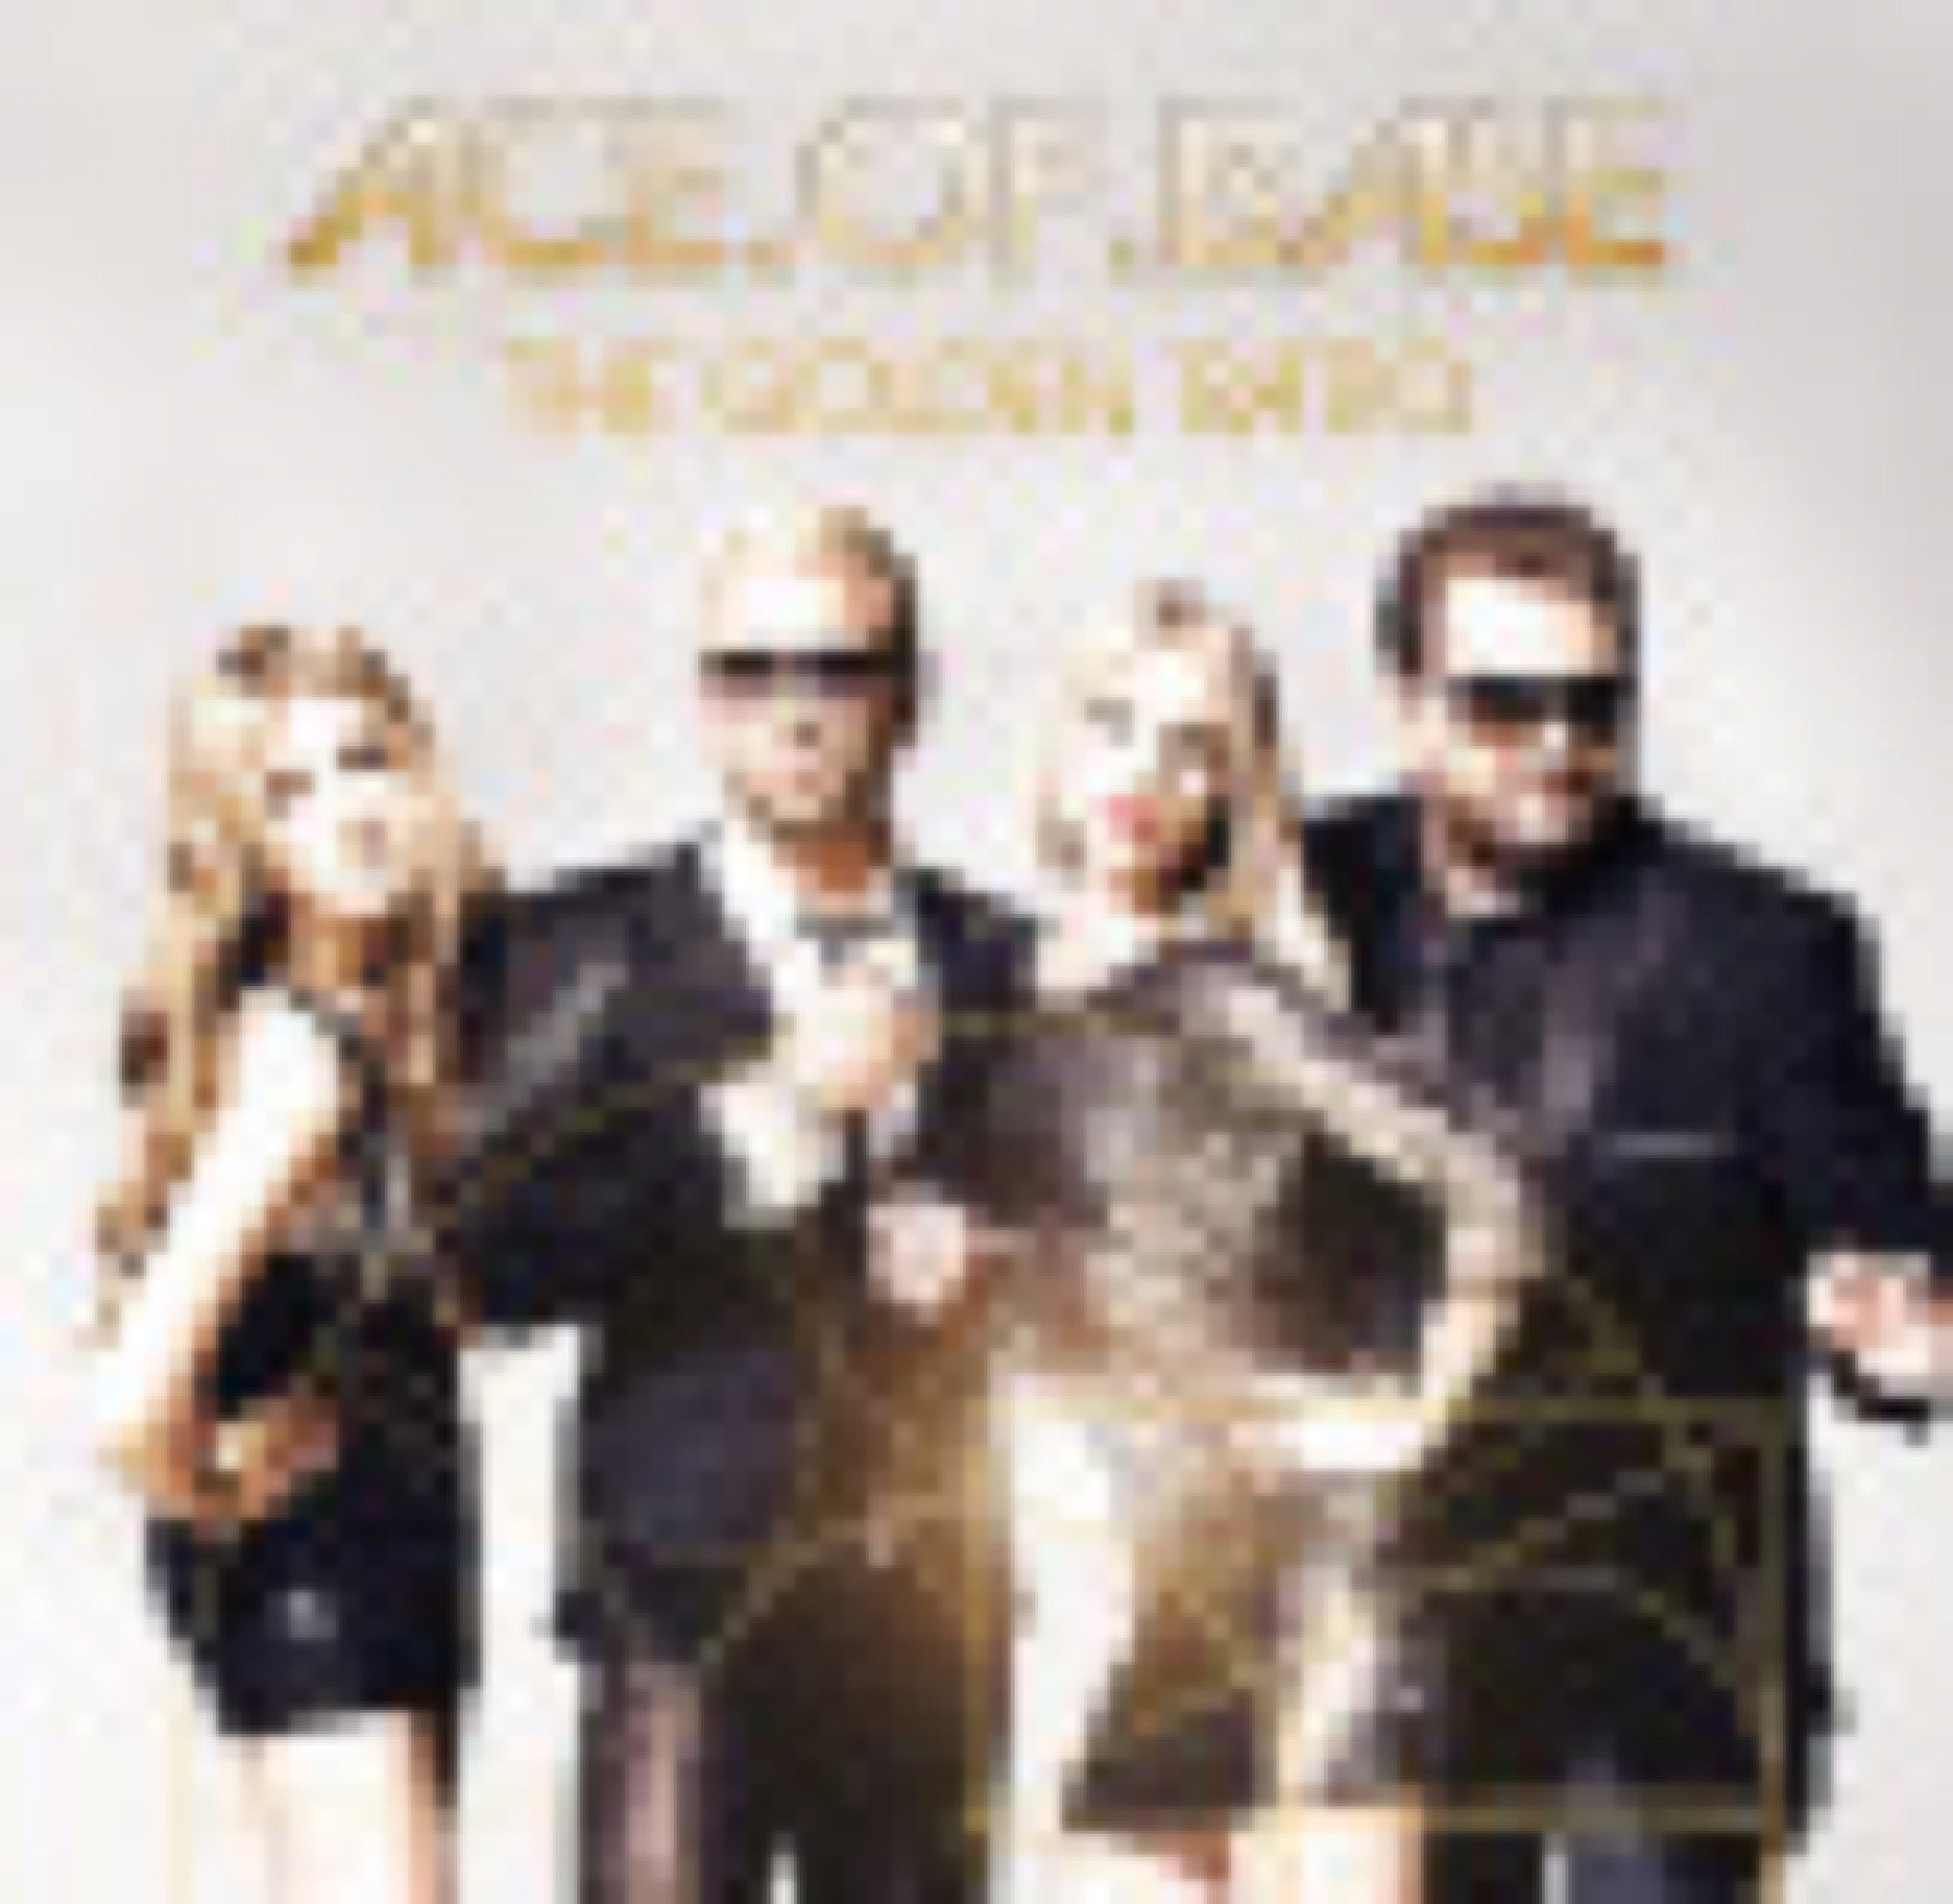 ACE OF BASE / Universal Music / Niclas Brunzell